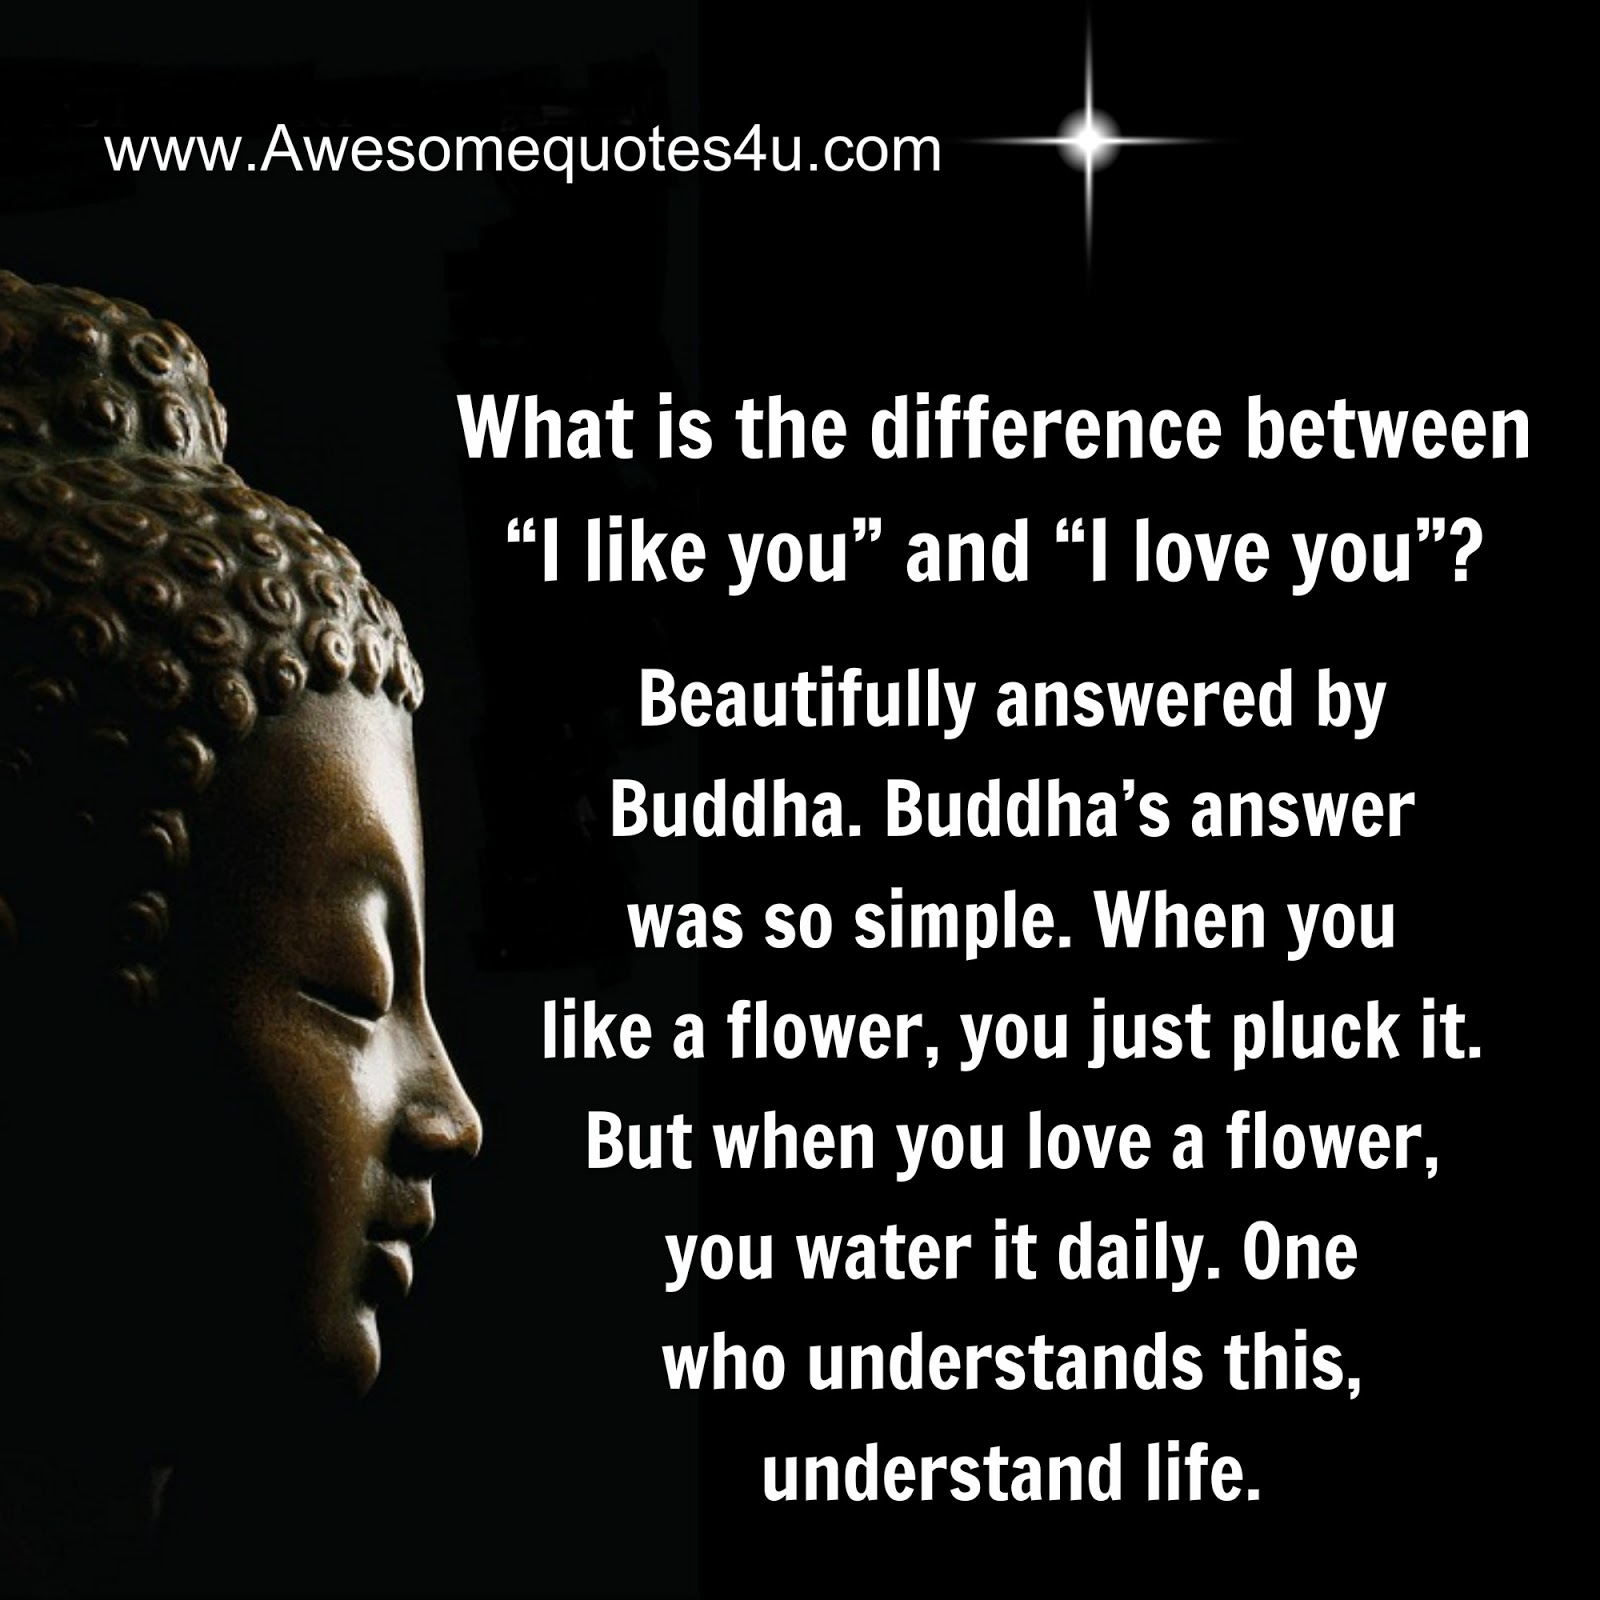 Buddhist Quotes On Love Best Beautiful Quotes Difference Between I Like You And I Love You